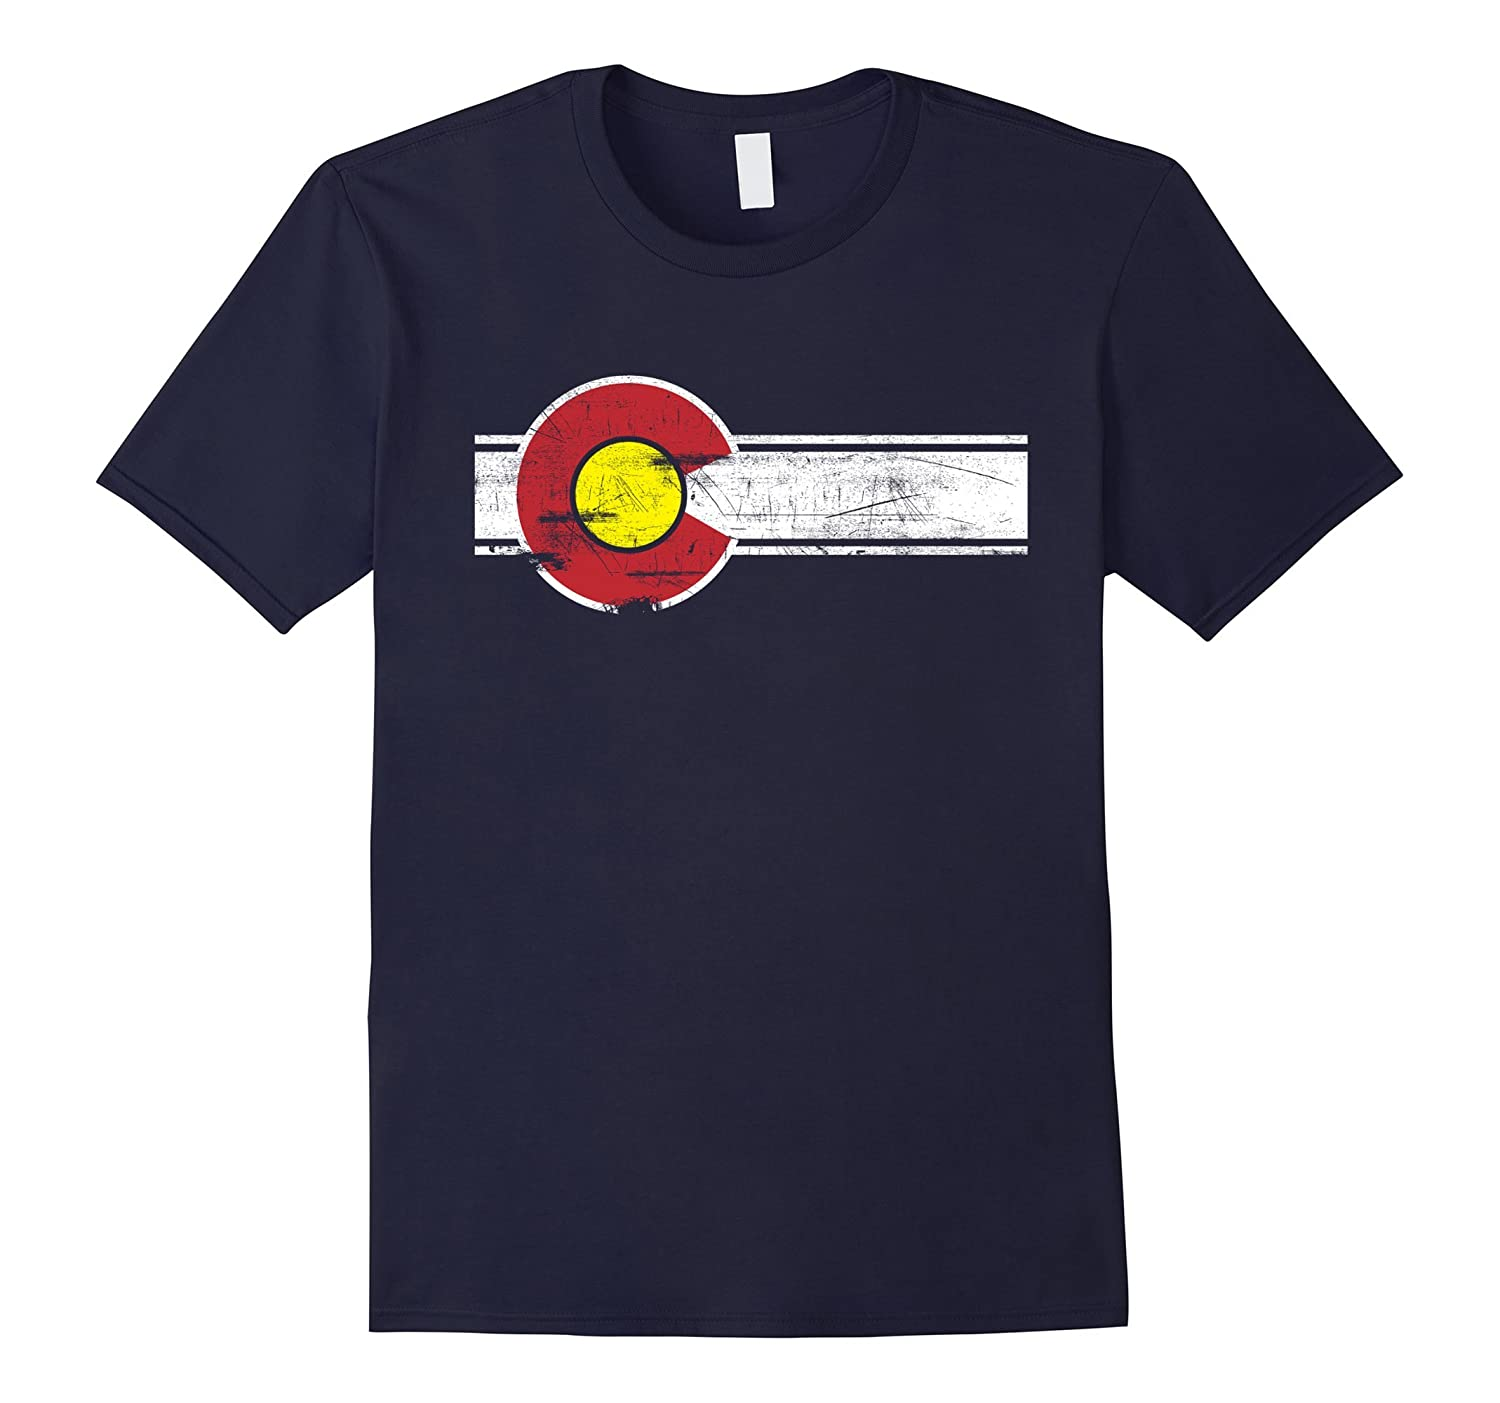 Colorado State Flag Distressed T-shirt - Vintage Look-TH